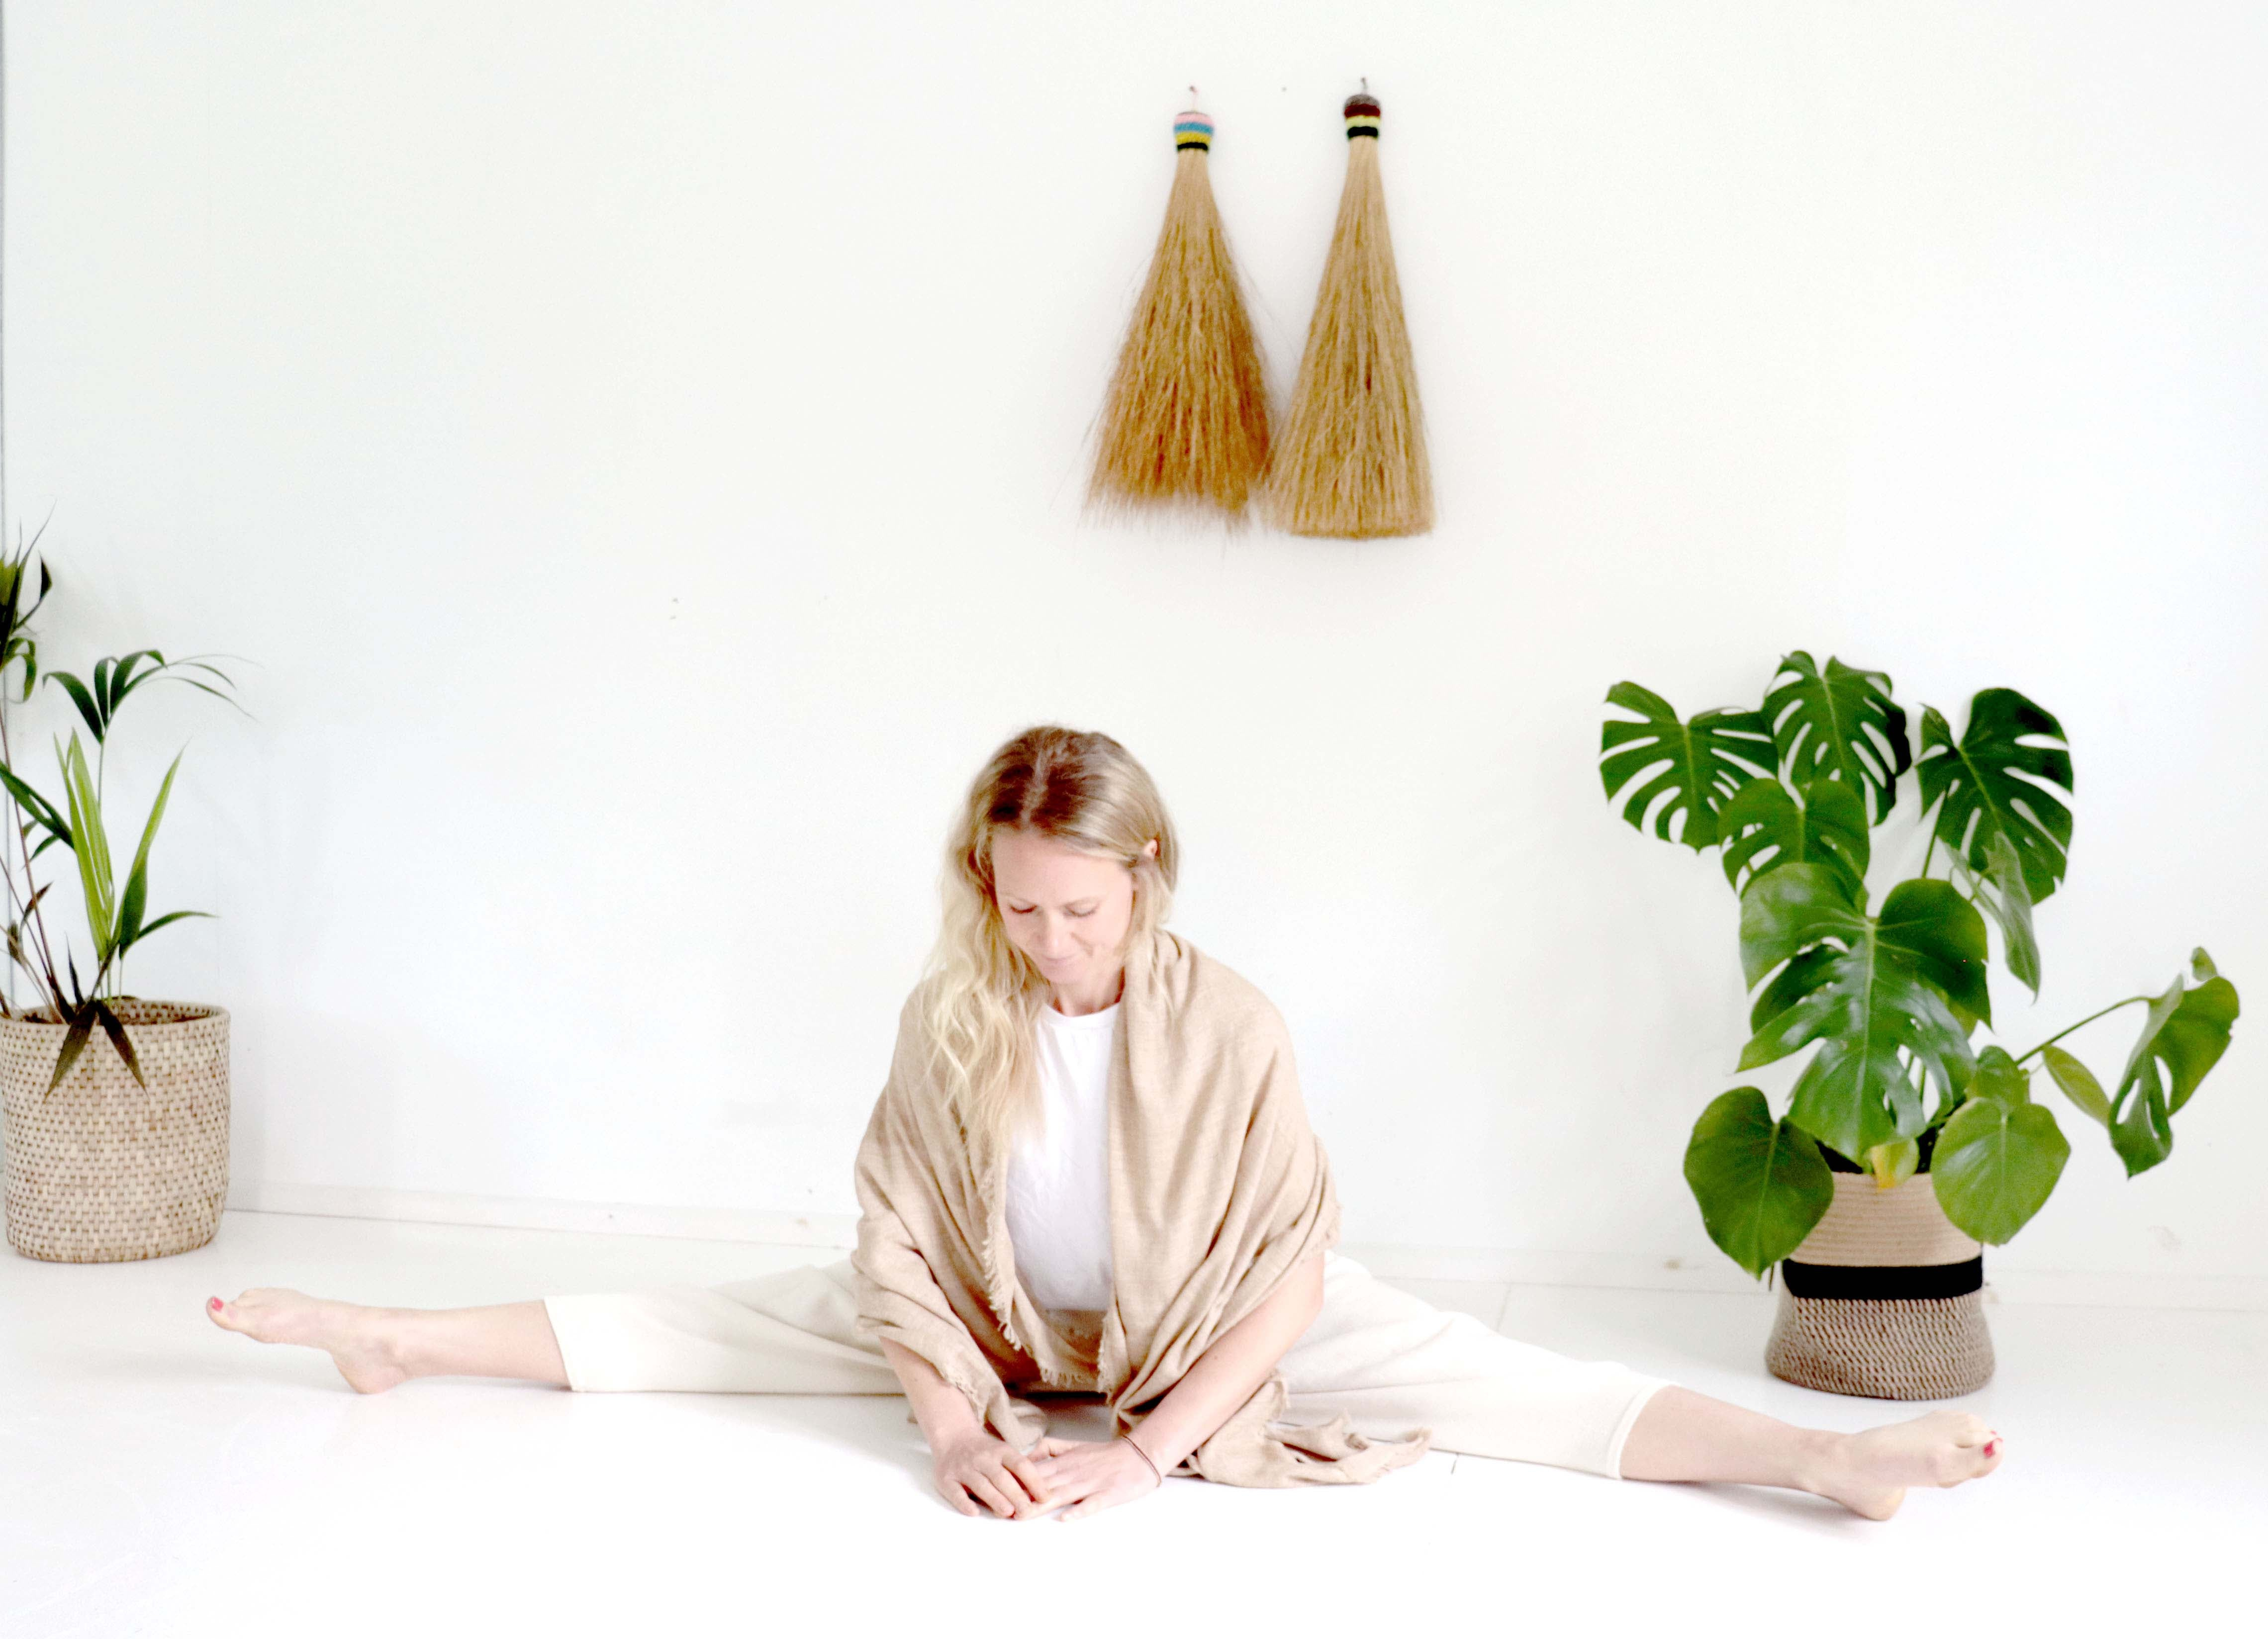 Chloe Pilates wears Thread Tales Ancestral Wellness Collection, launching in mid July, early August.